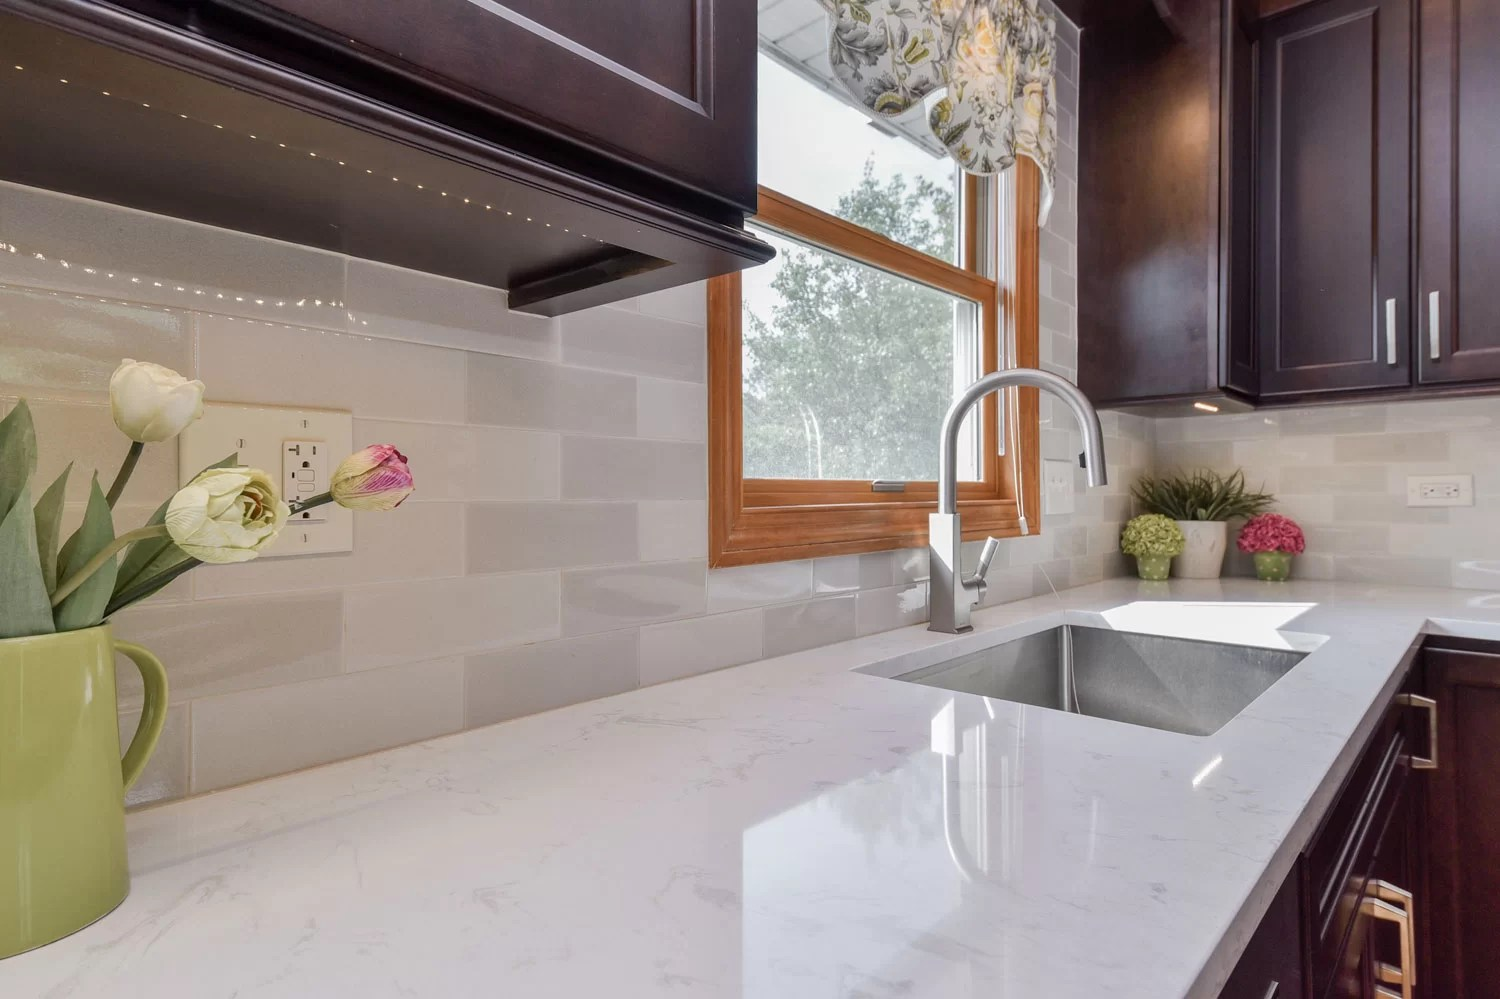 Sue Amp Russell S Kitchen Remodel Pictures Home Remodeling